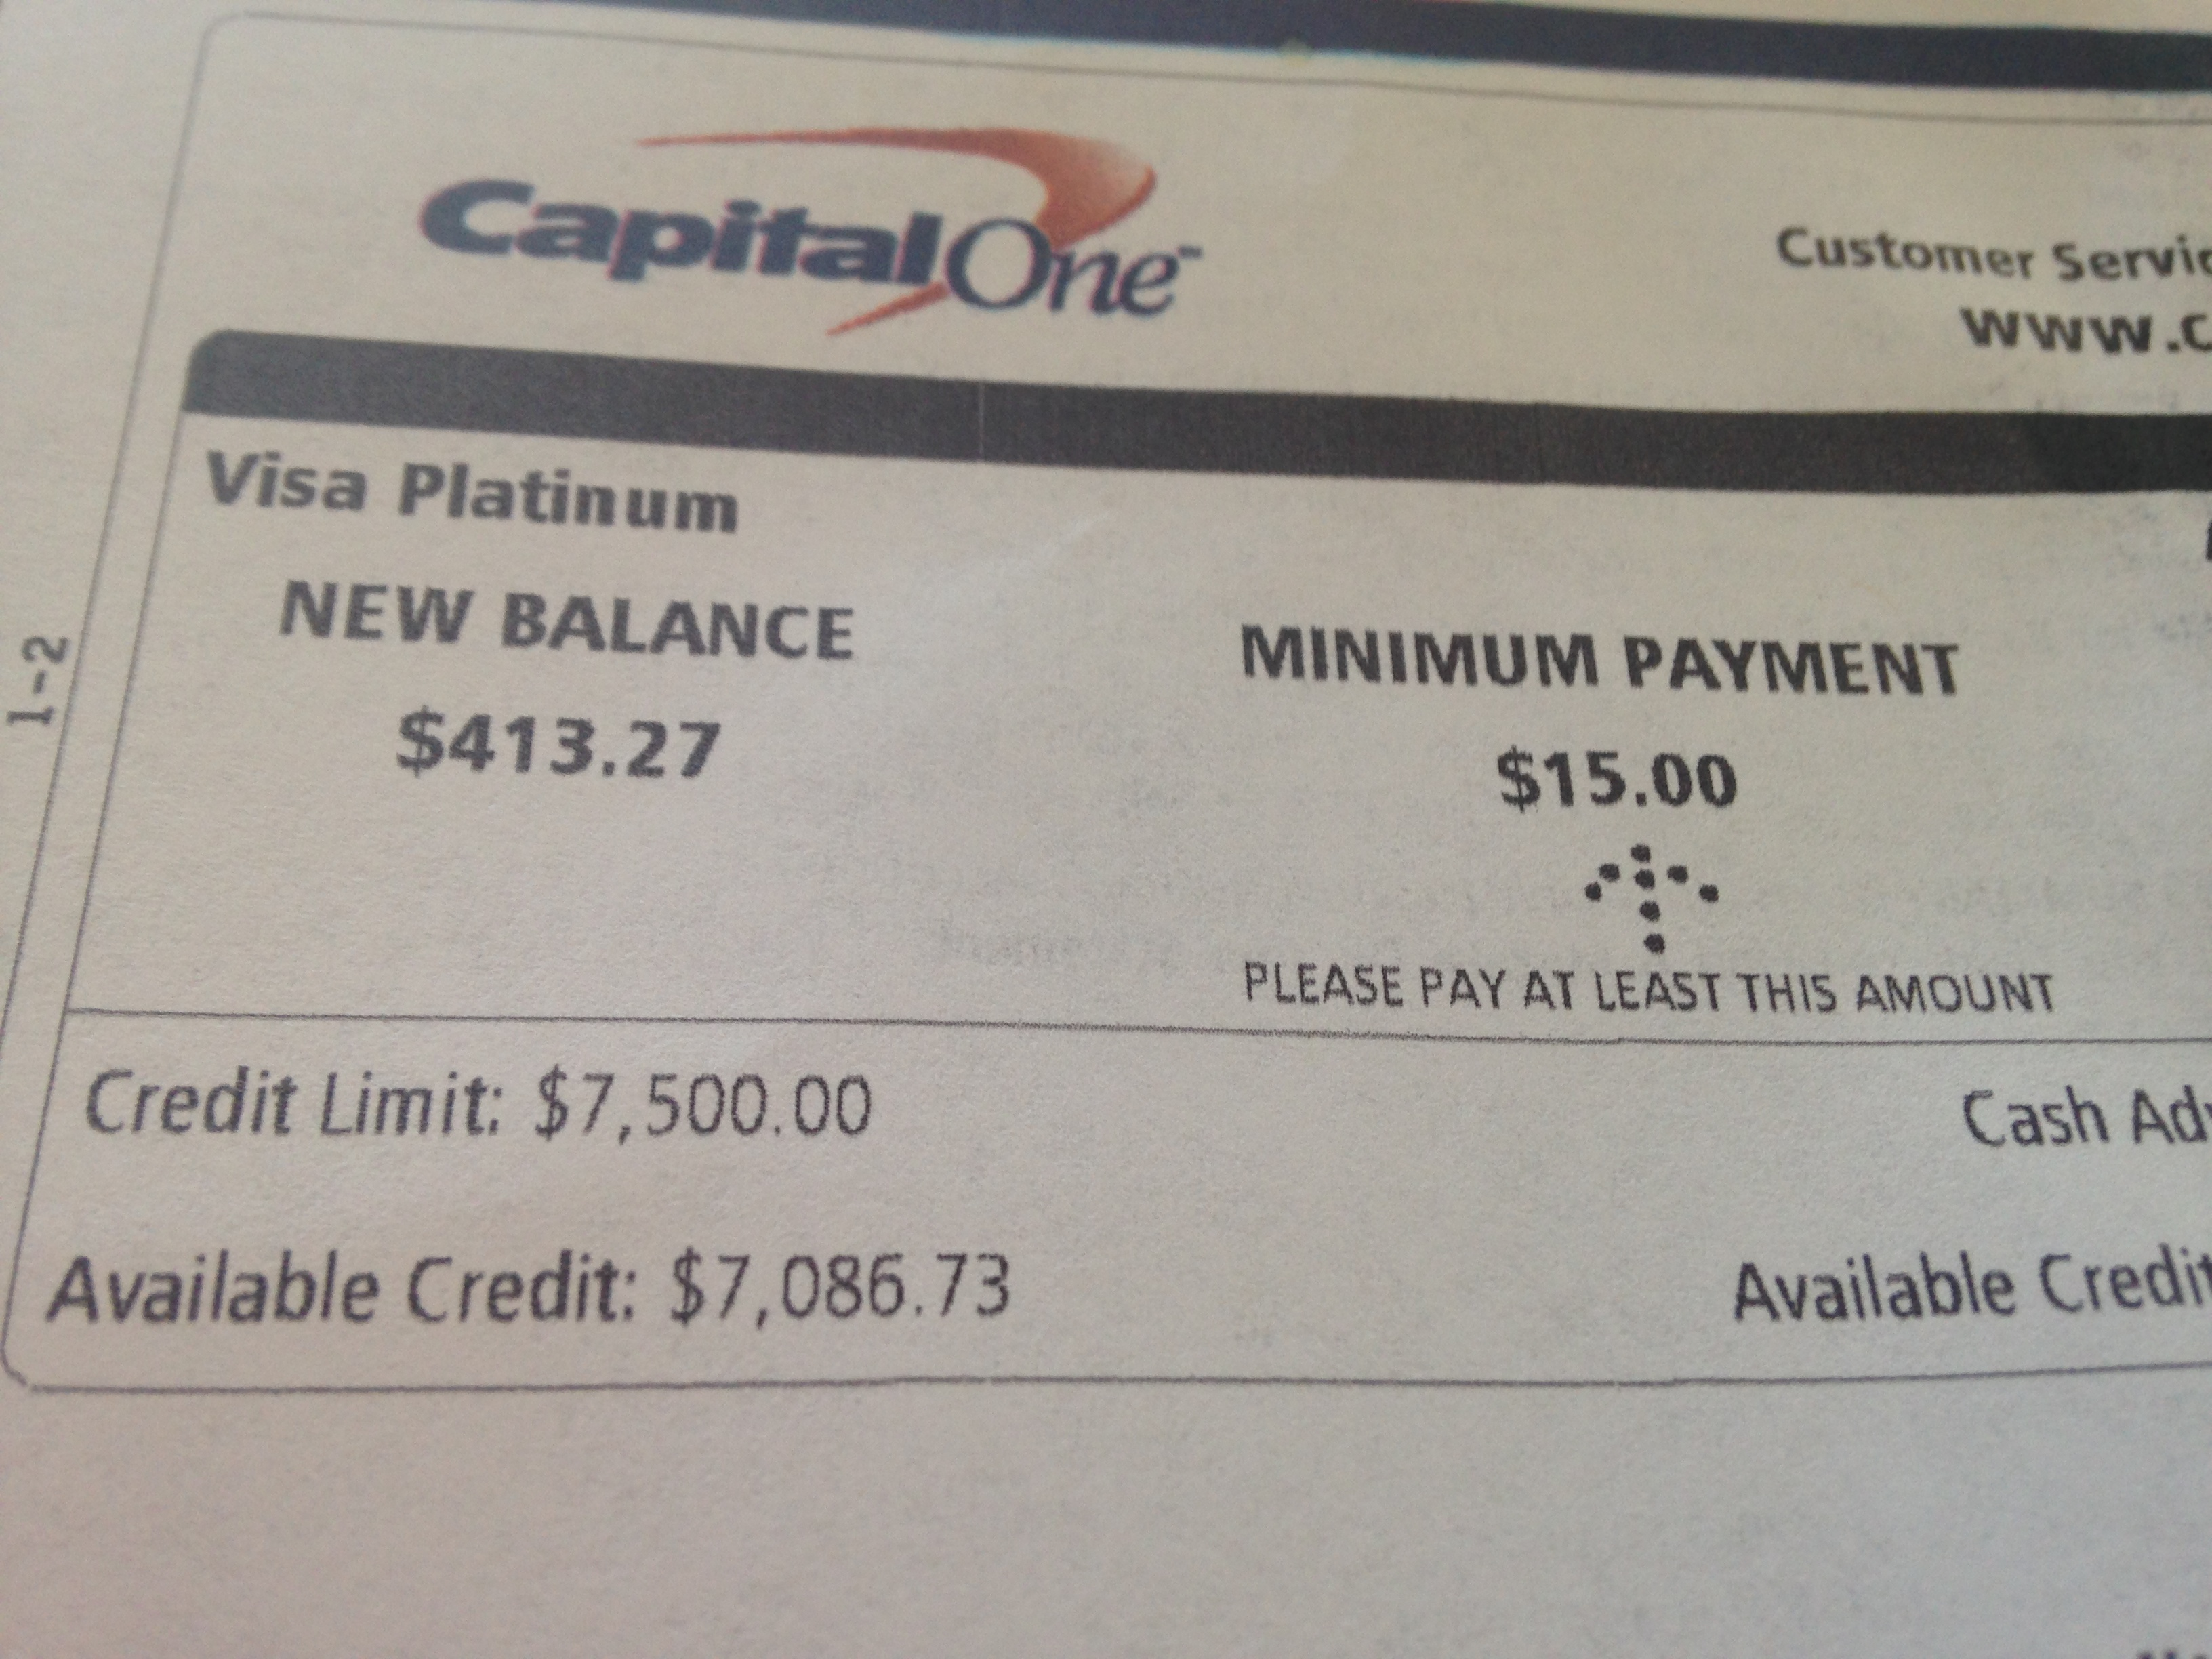 Capital One Credit Card Images capital one business credit card